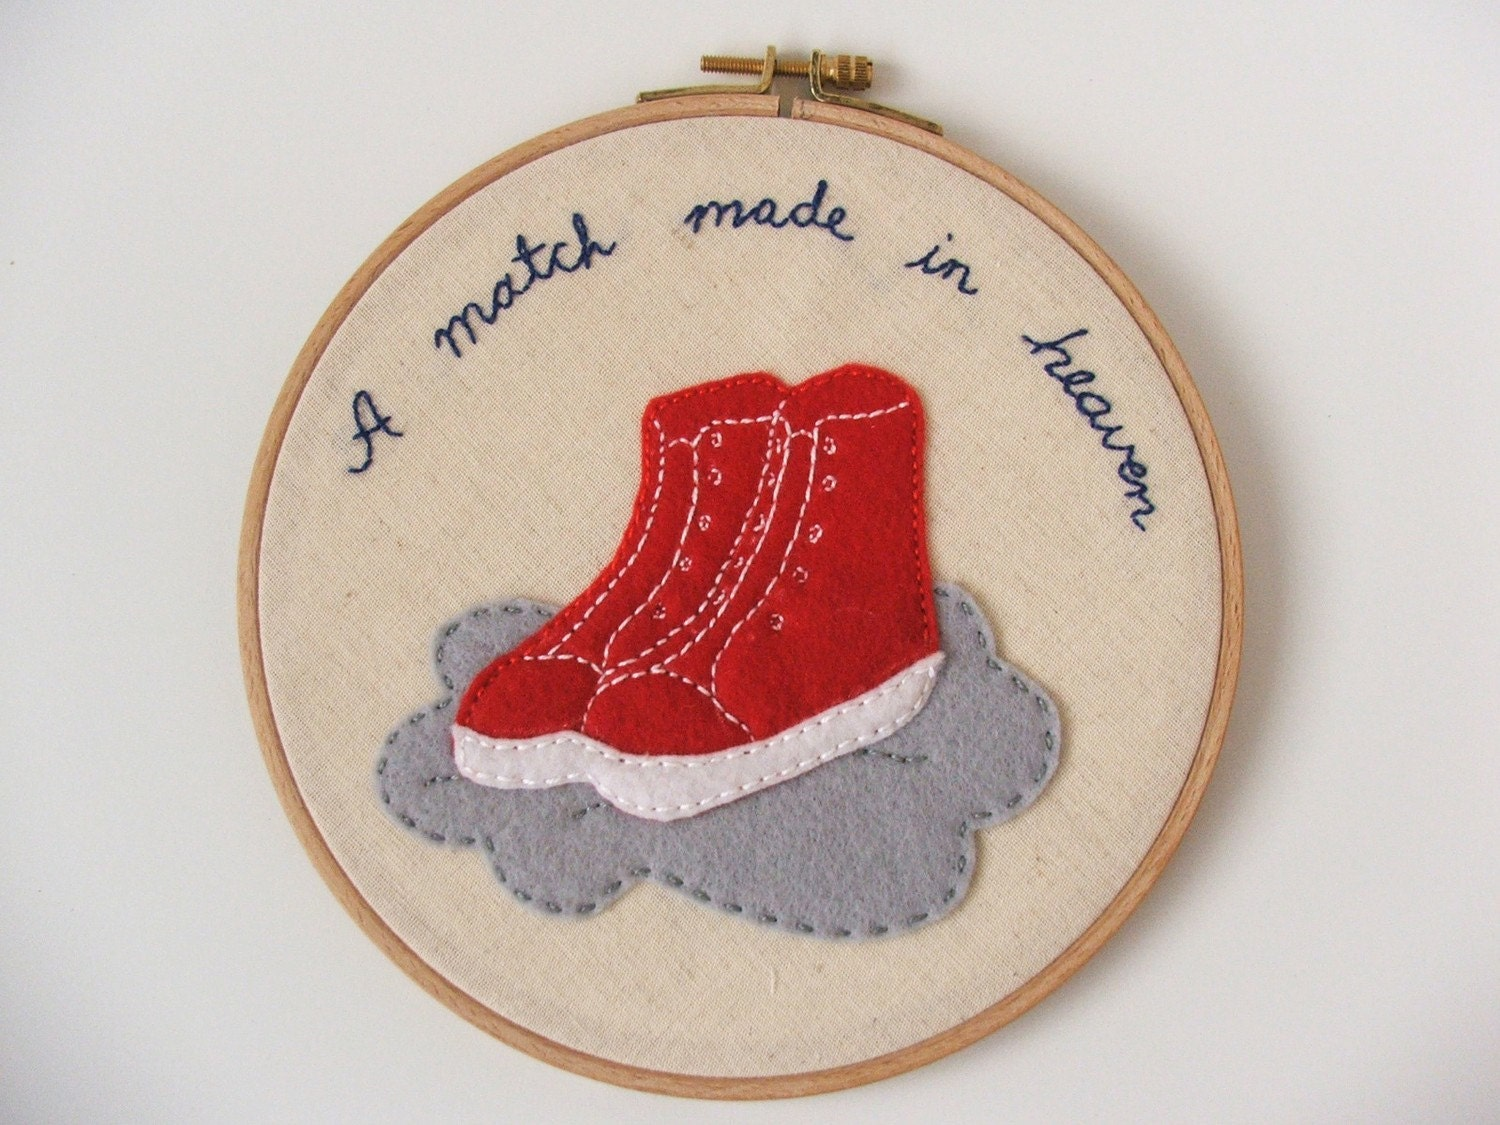 A match made in heaven - embroidery applique hanging hoop wall art